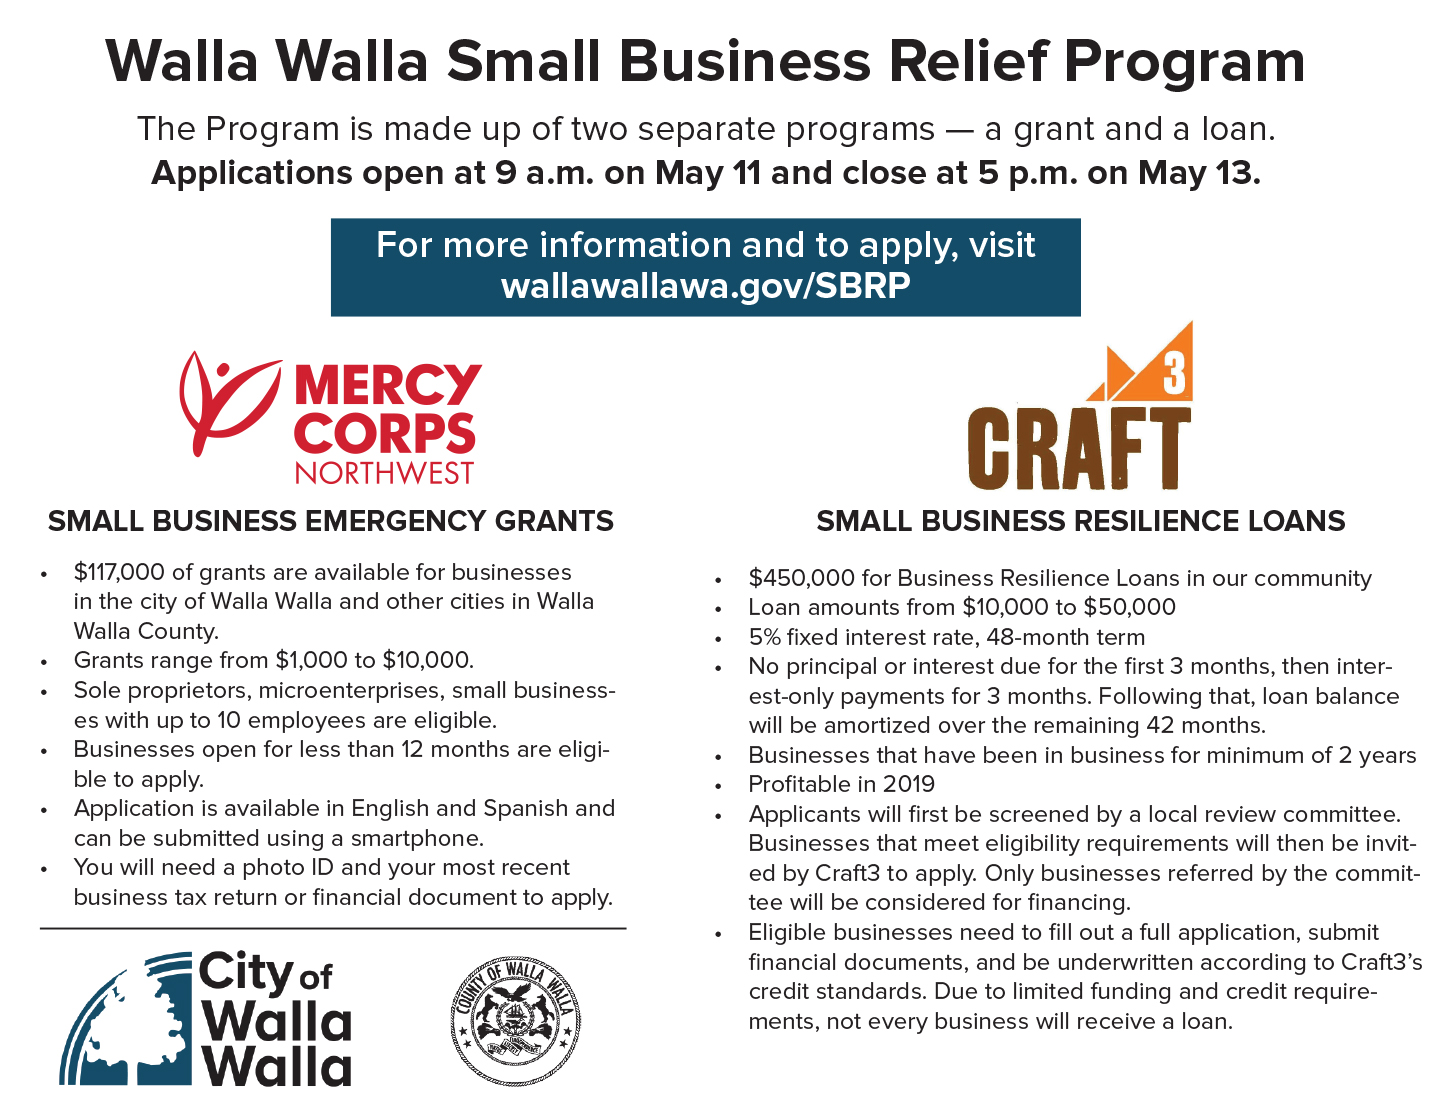 Small Business Relief Program promo